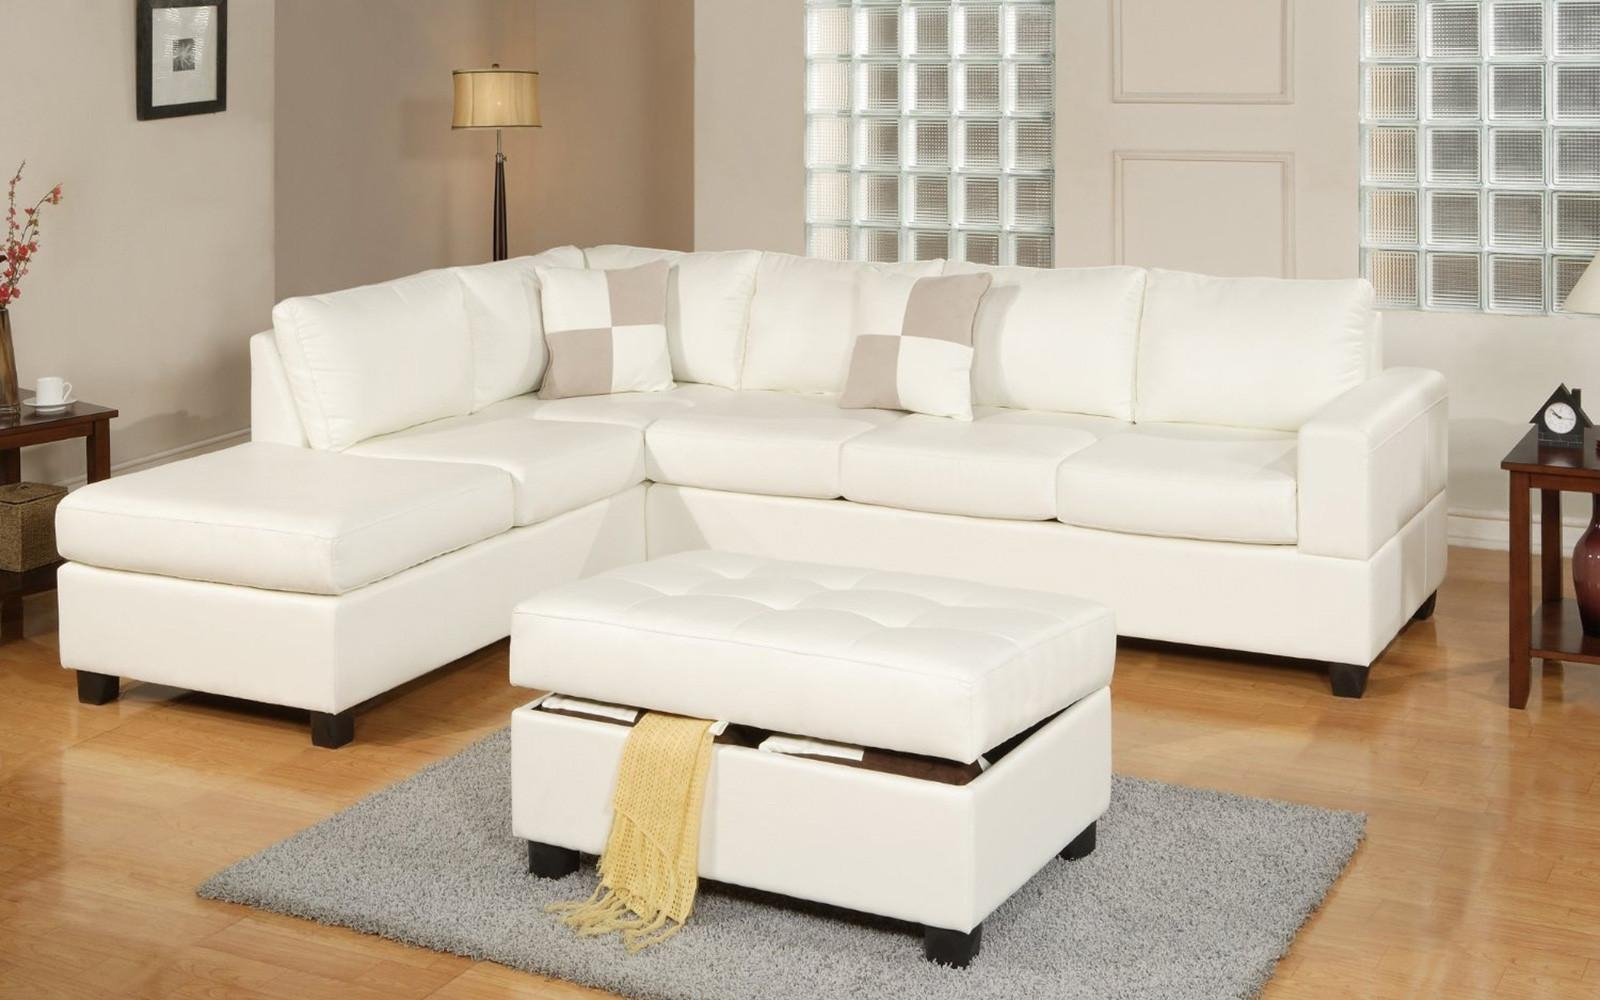 21 best ideas white sectional sofa for sale sofa ideas. Black Bedroom Furniture Sets. Home Design Ideas